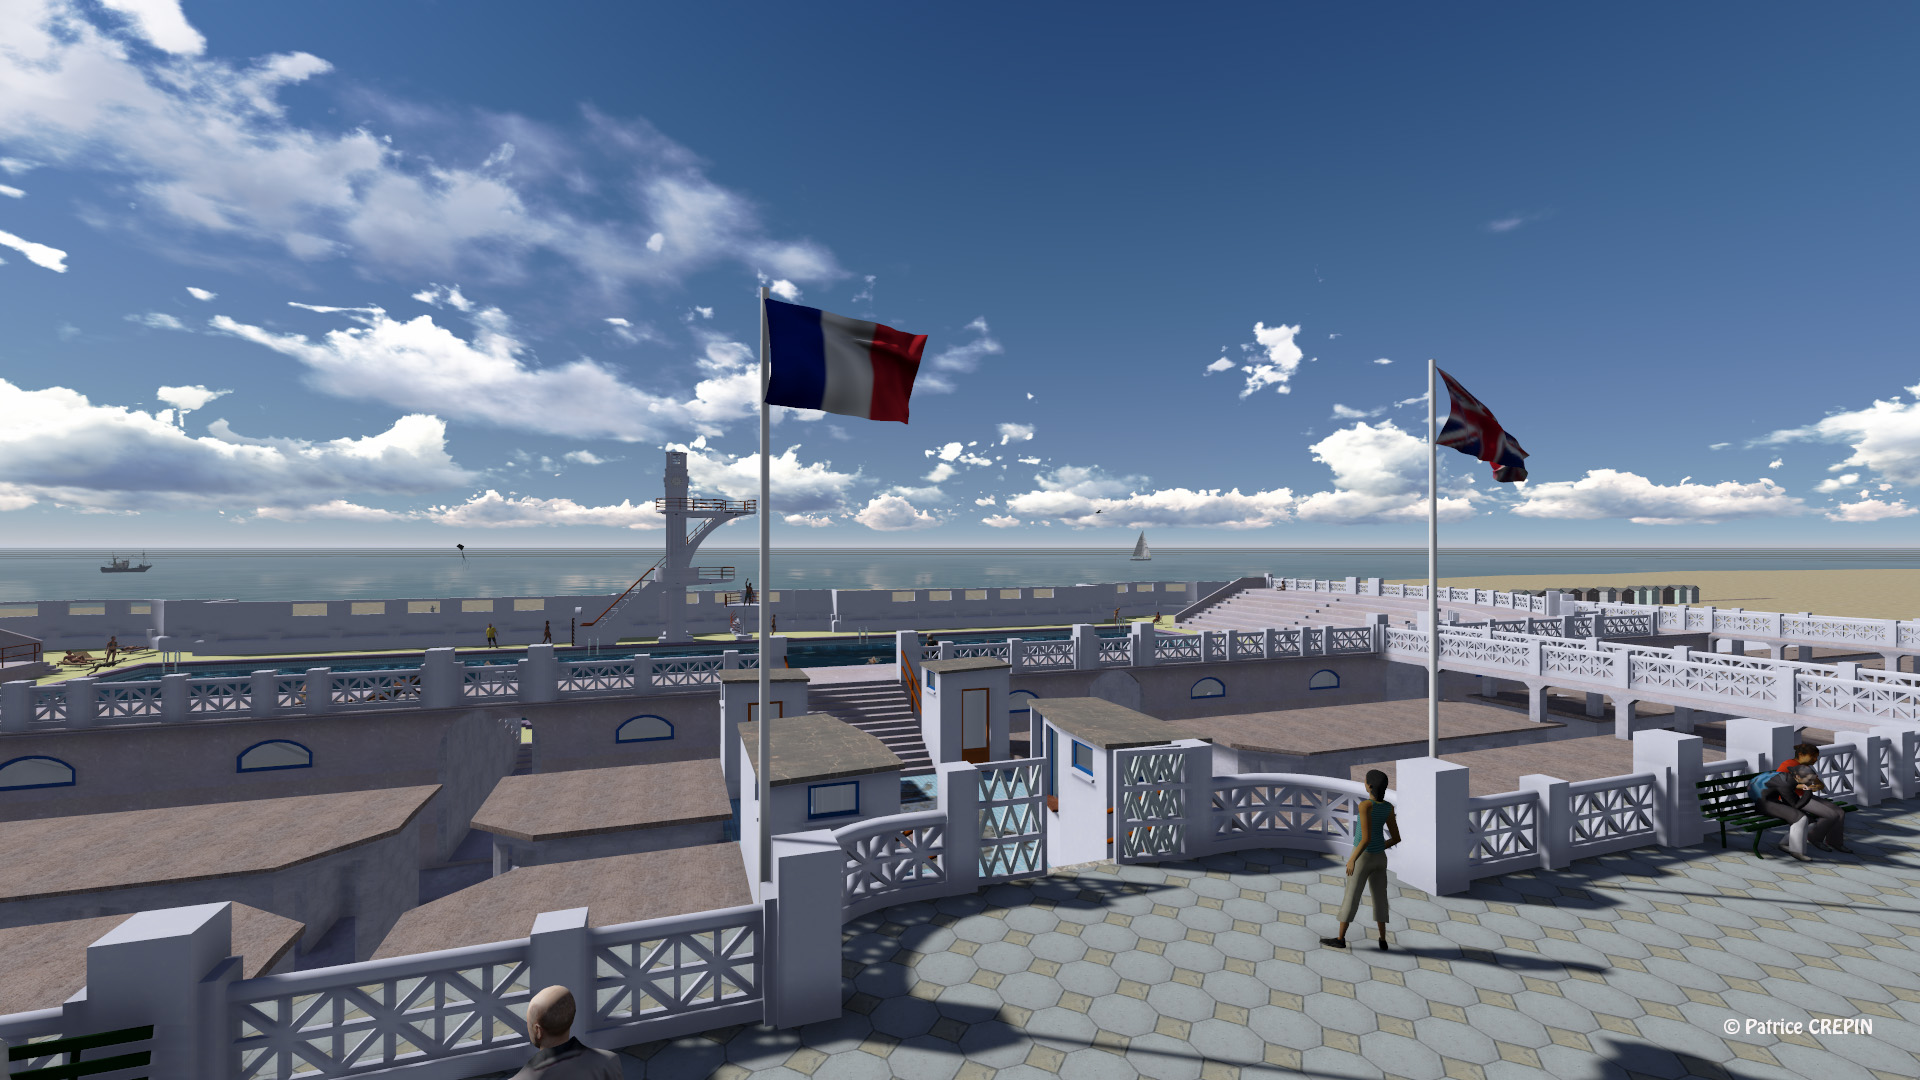 Fiat lux fiat urbs for Belle piscine paris